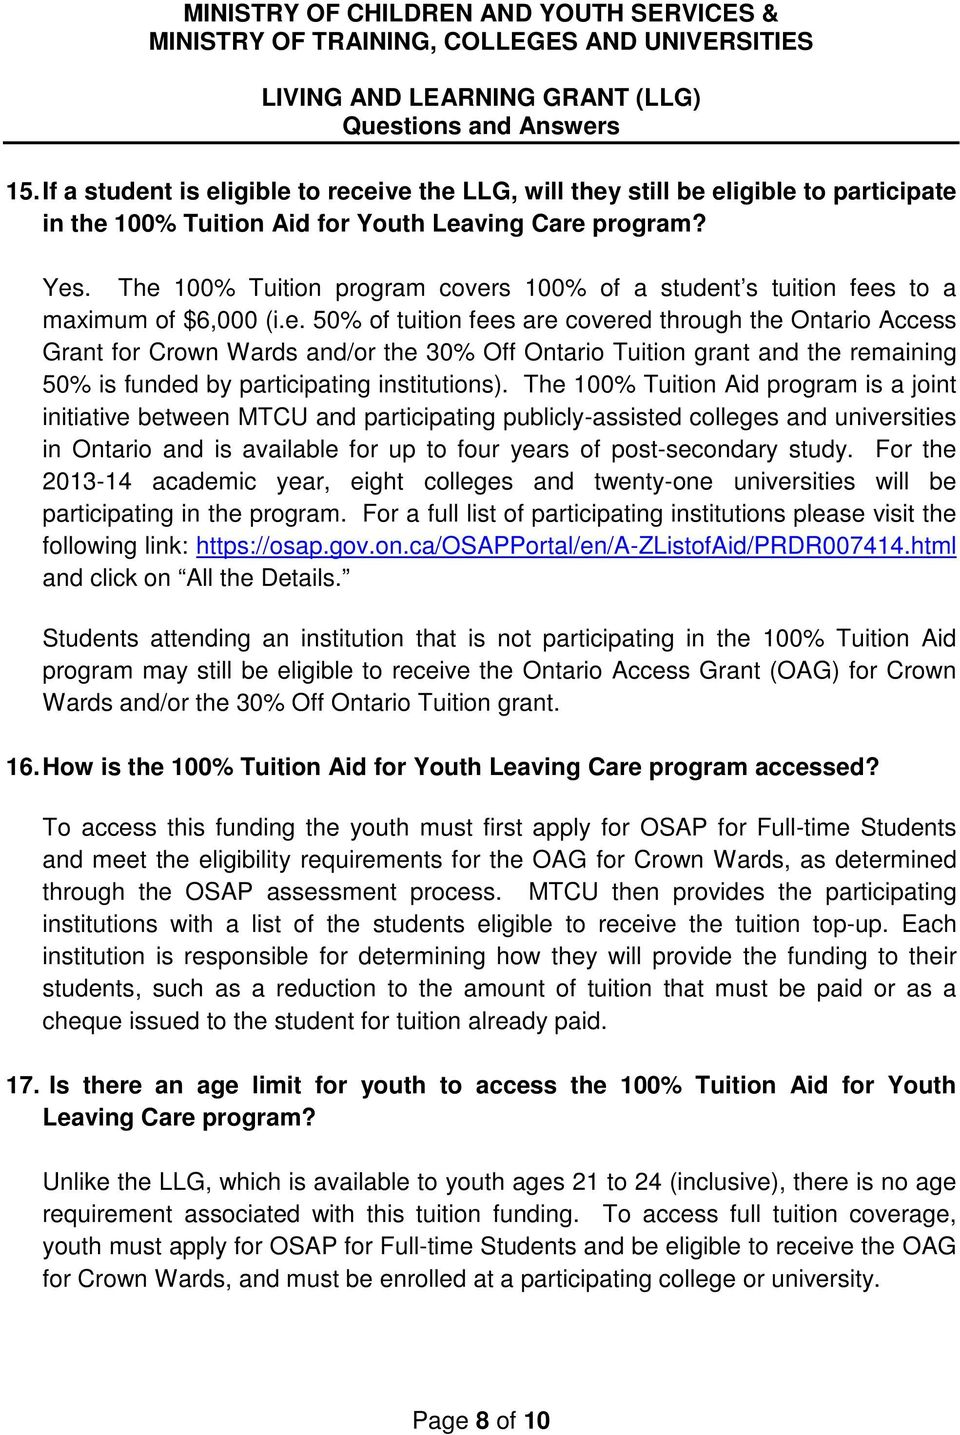 The 100% Tuition Aid program is a joint initiative between MTCU and participating publicly-assisted colleges and universities in Ontario and is available for up to four years of post-secondary study.